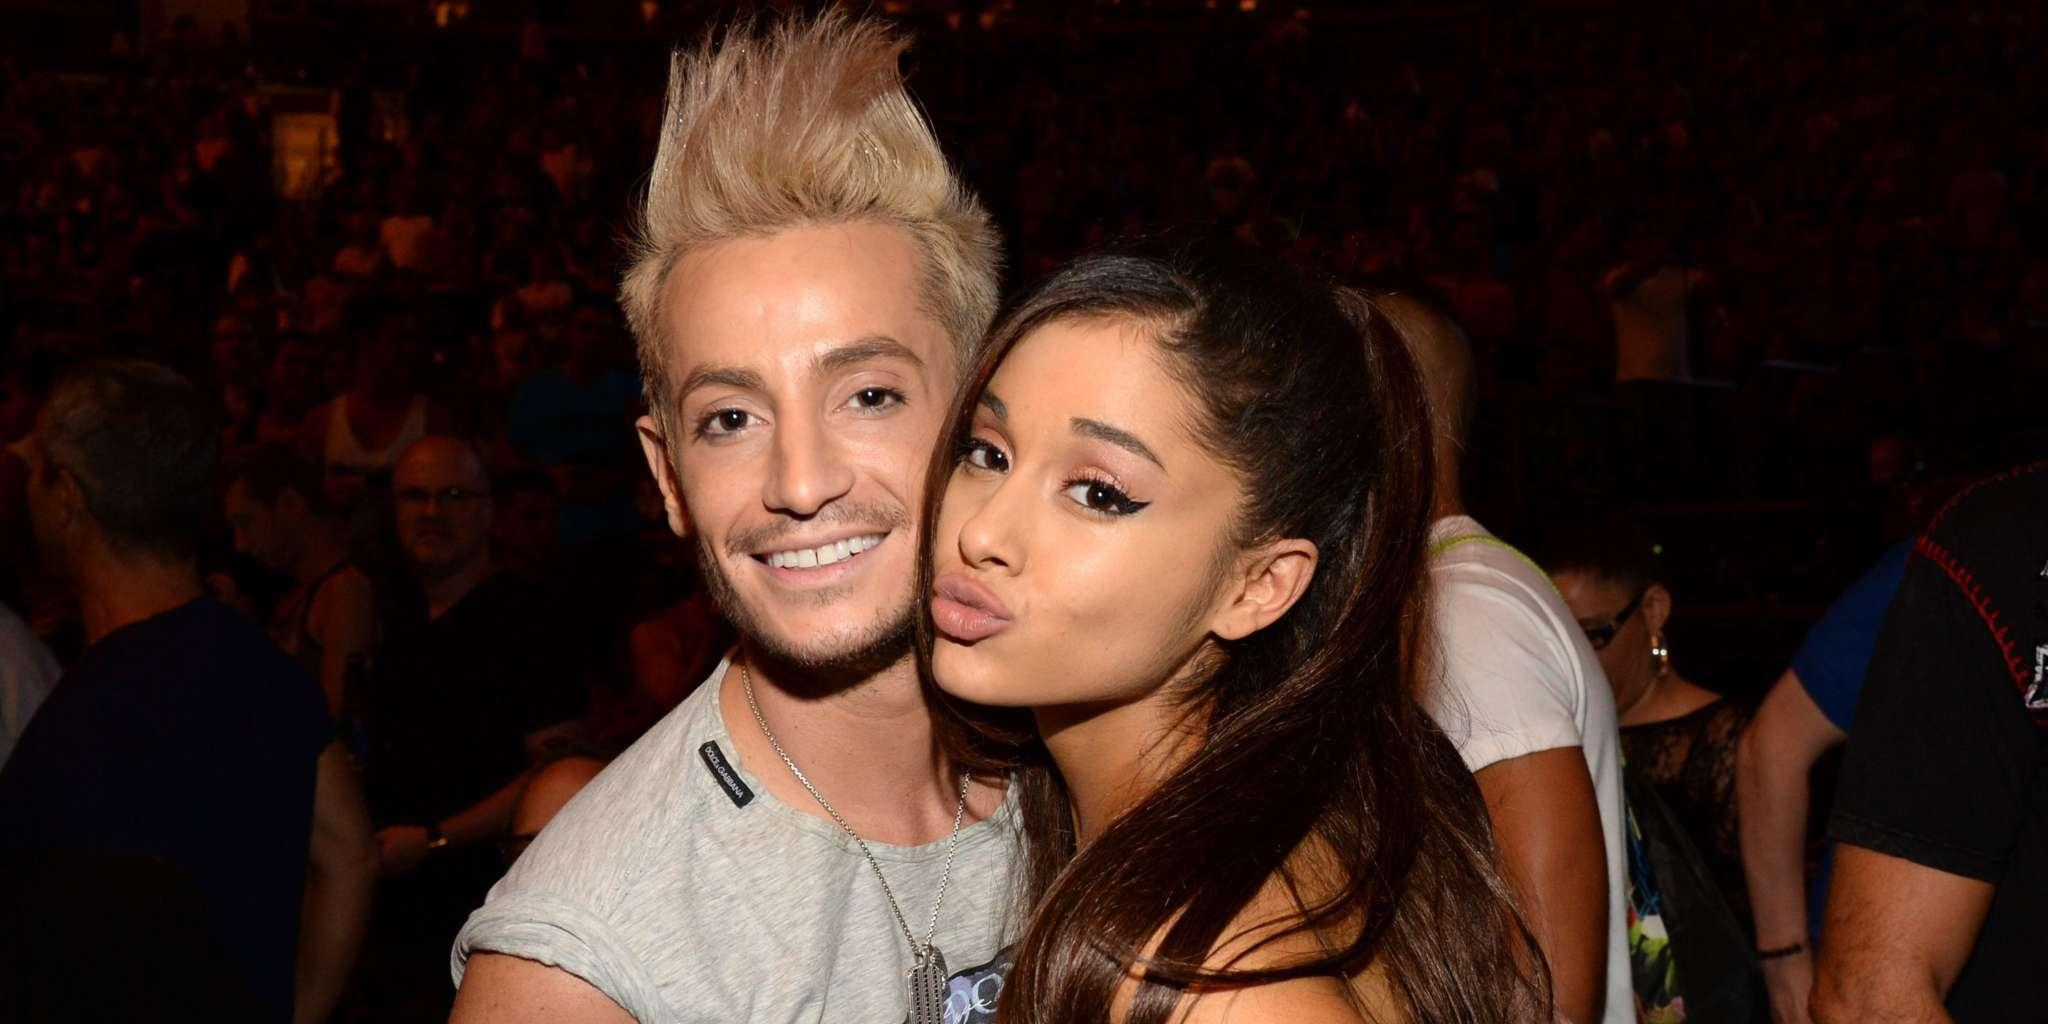 Ariana Grande's Brother Gushes Over Her Upcoming Grammy Performance - It Will 'Knock Everyone's Socks Off!'